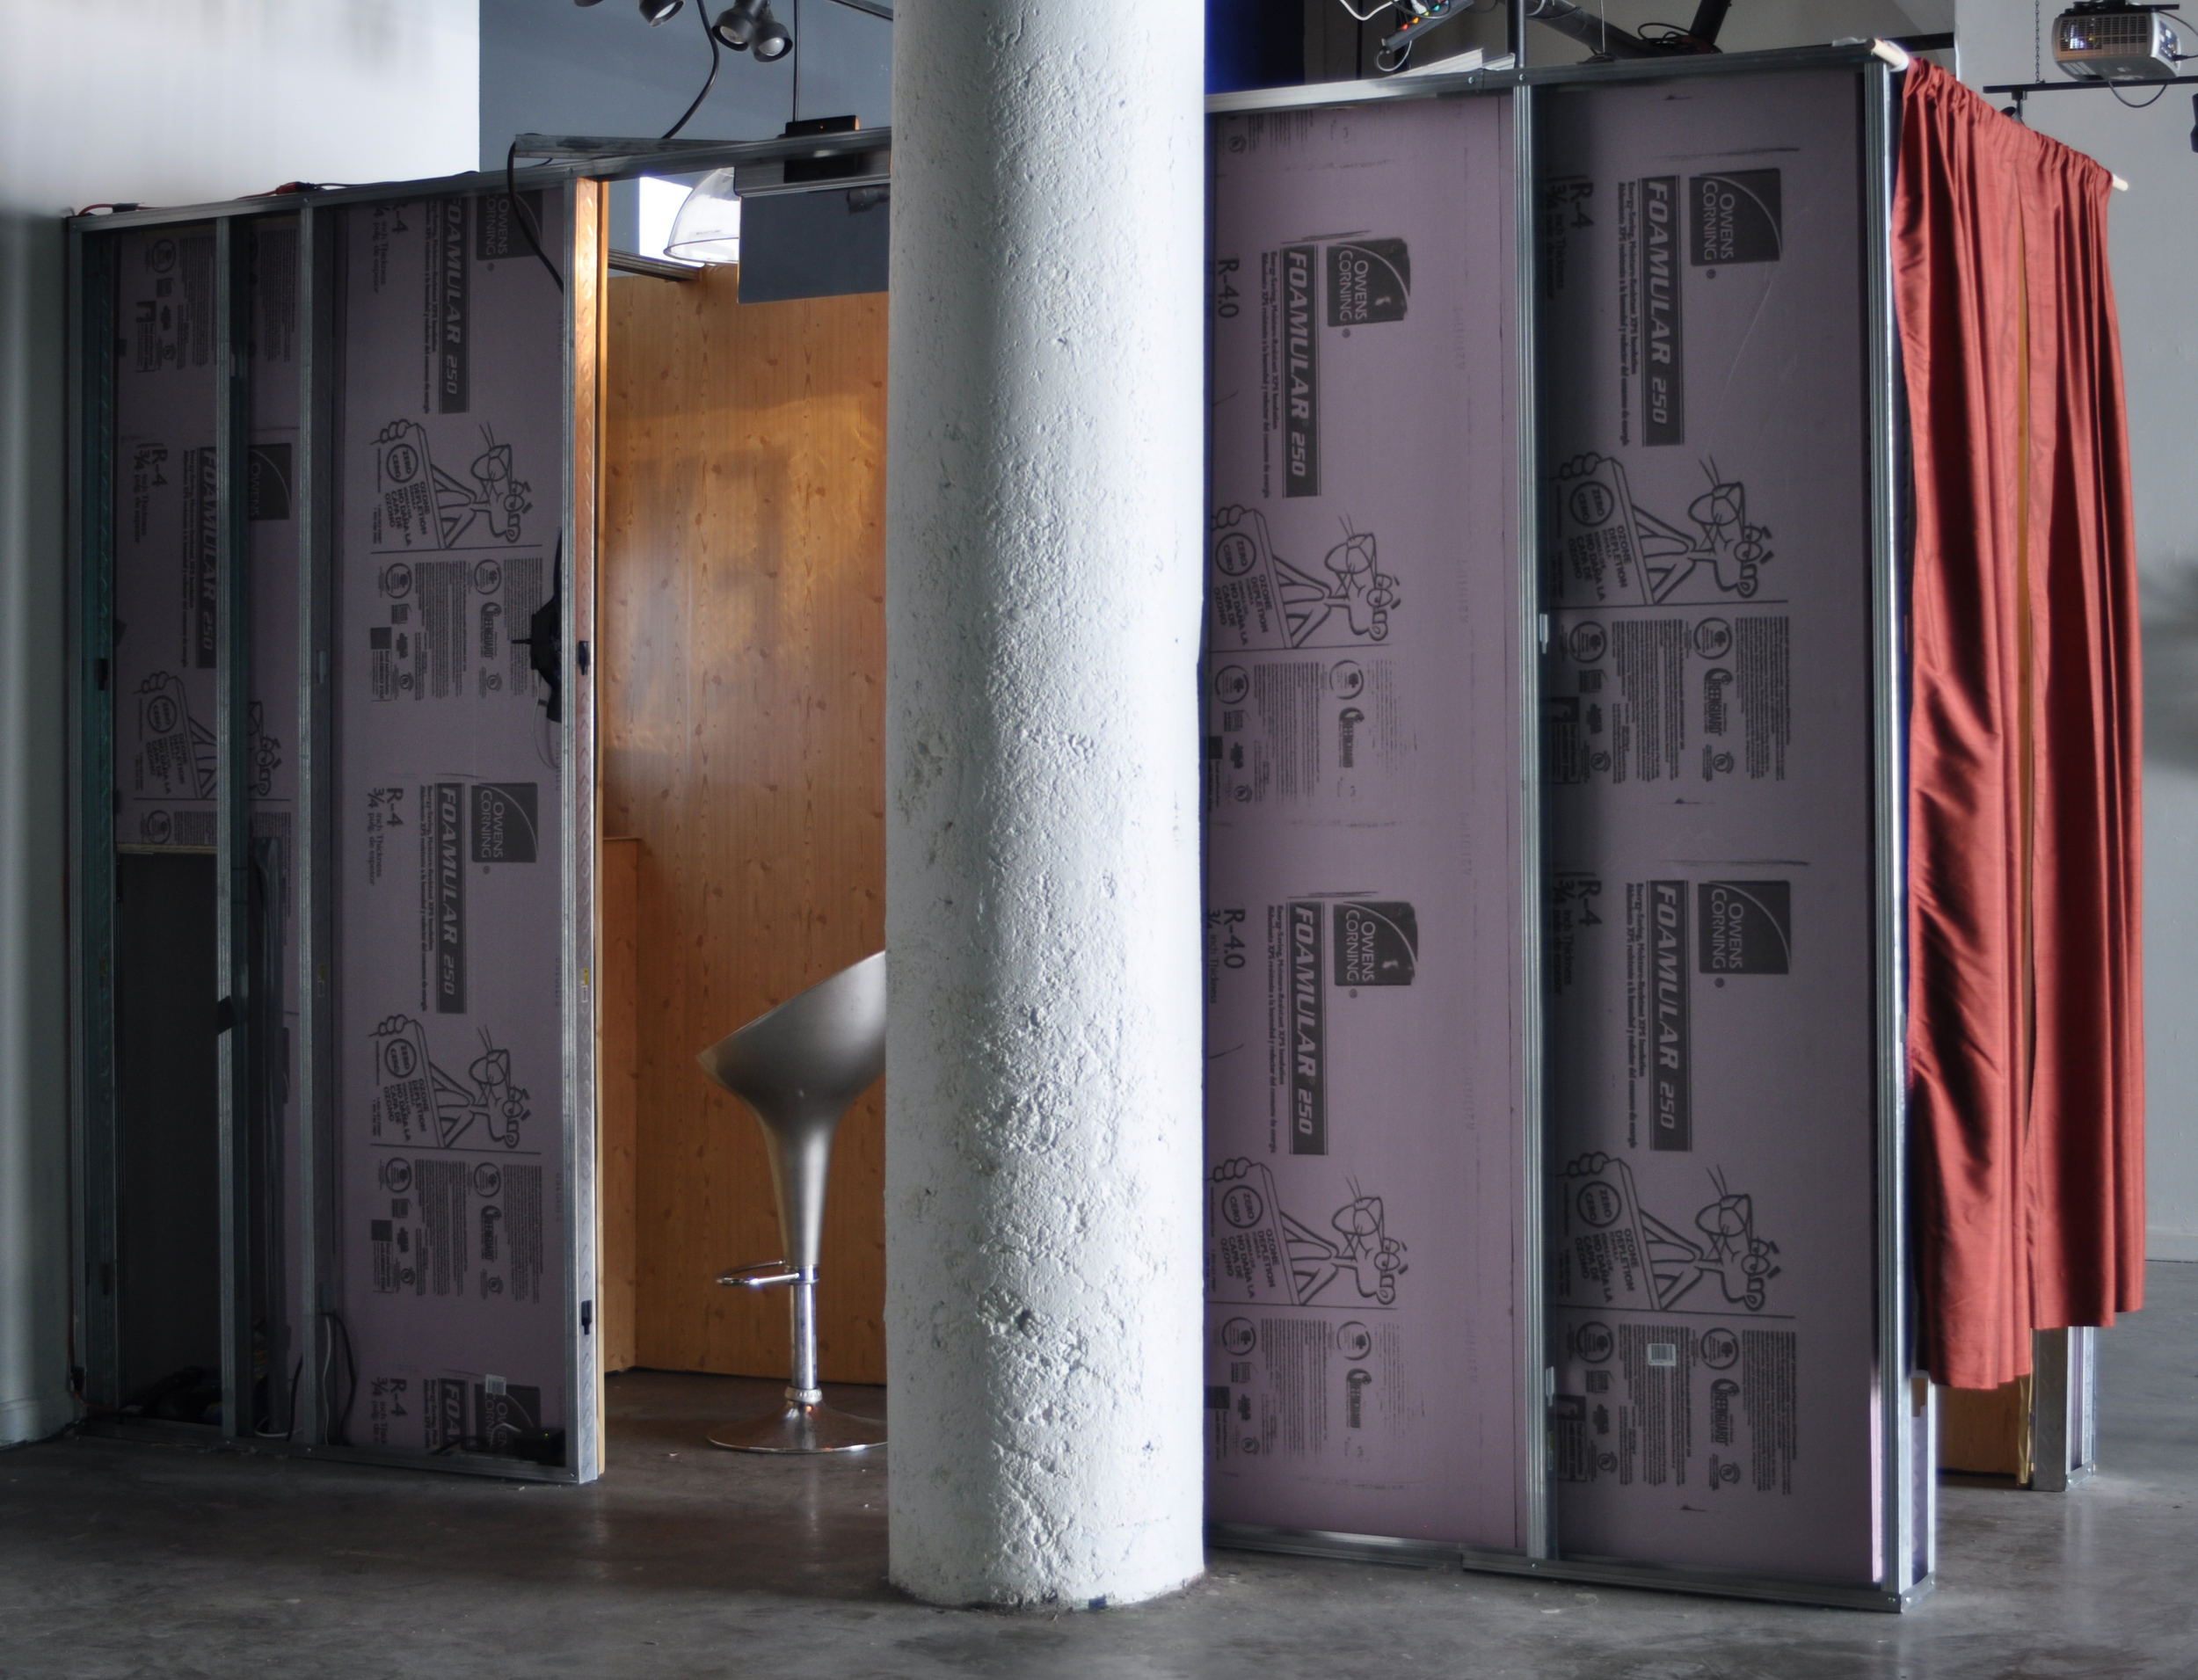 WHERE EVER YOU GO, THERE YOU ARE   Apfil 2012. Fourth Wall, Boston, MA. Mixed media installation, metal studs, rigid insulation, Con-Tact® paper, furnishings and  video . 4' x 12' x 18'.